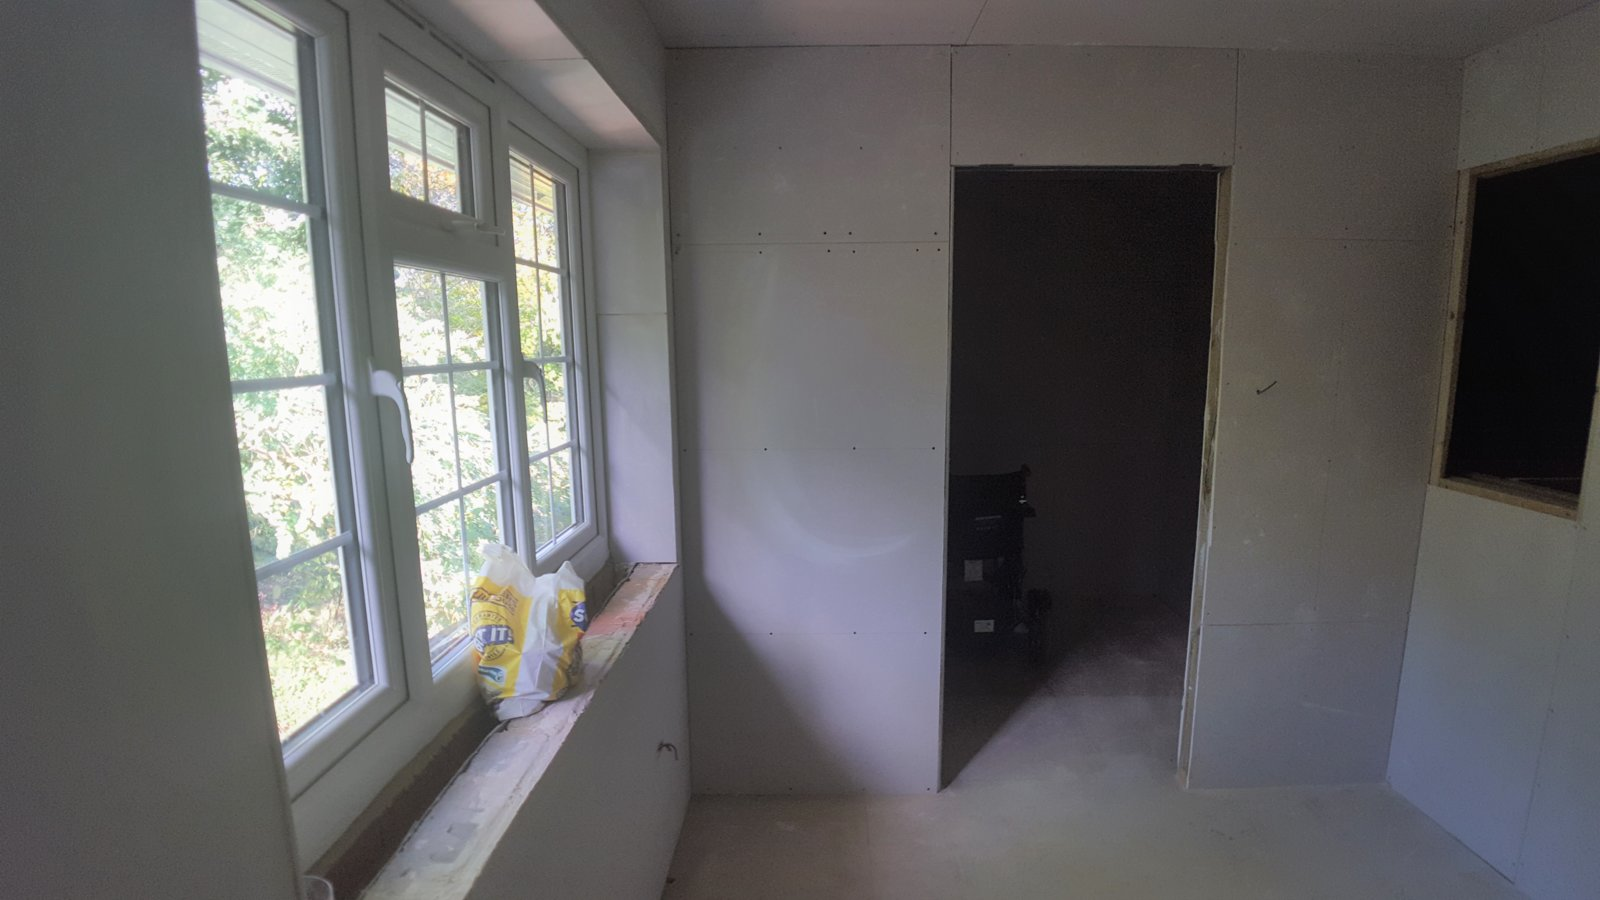 wardrobe door boarded.jpg